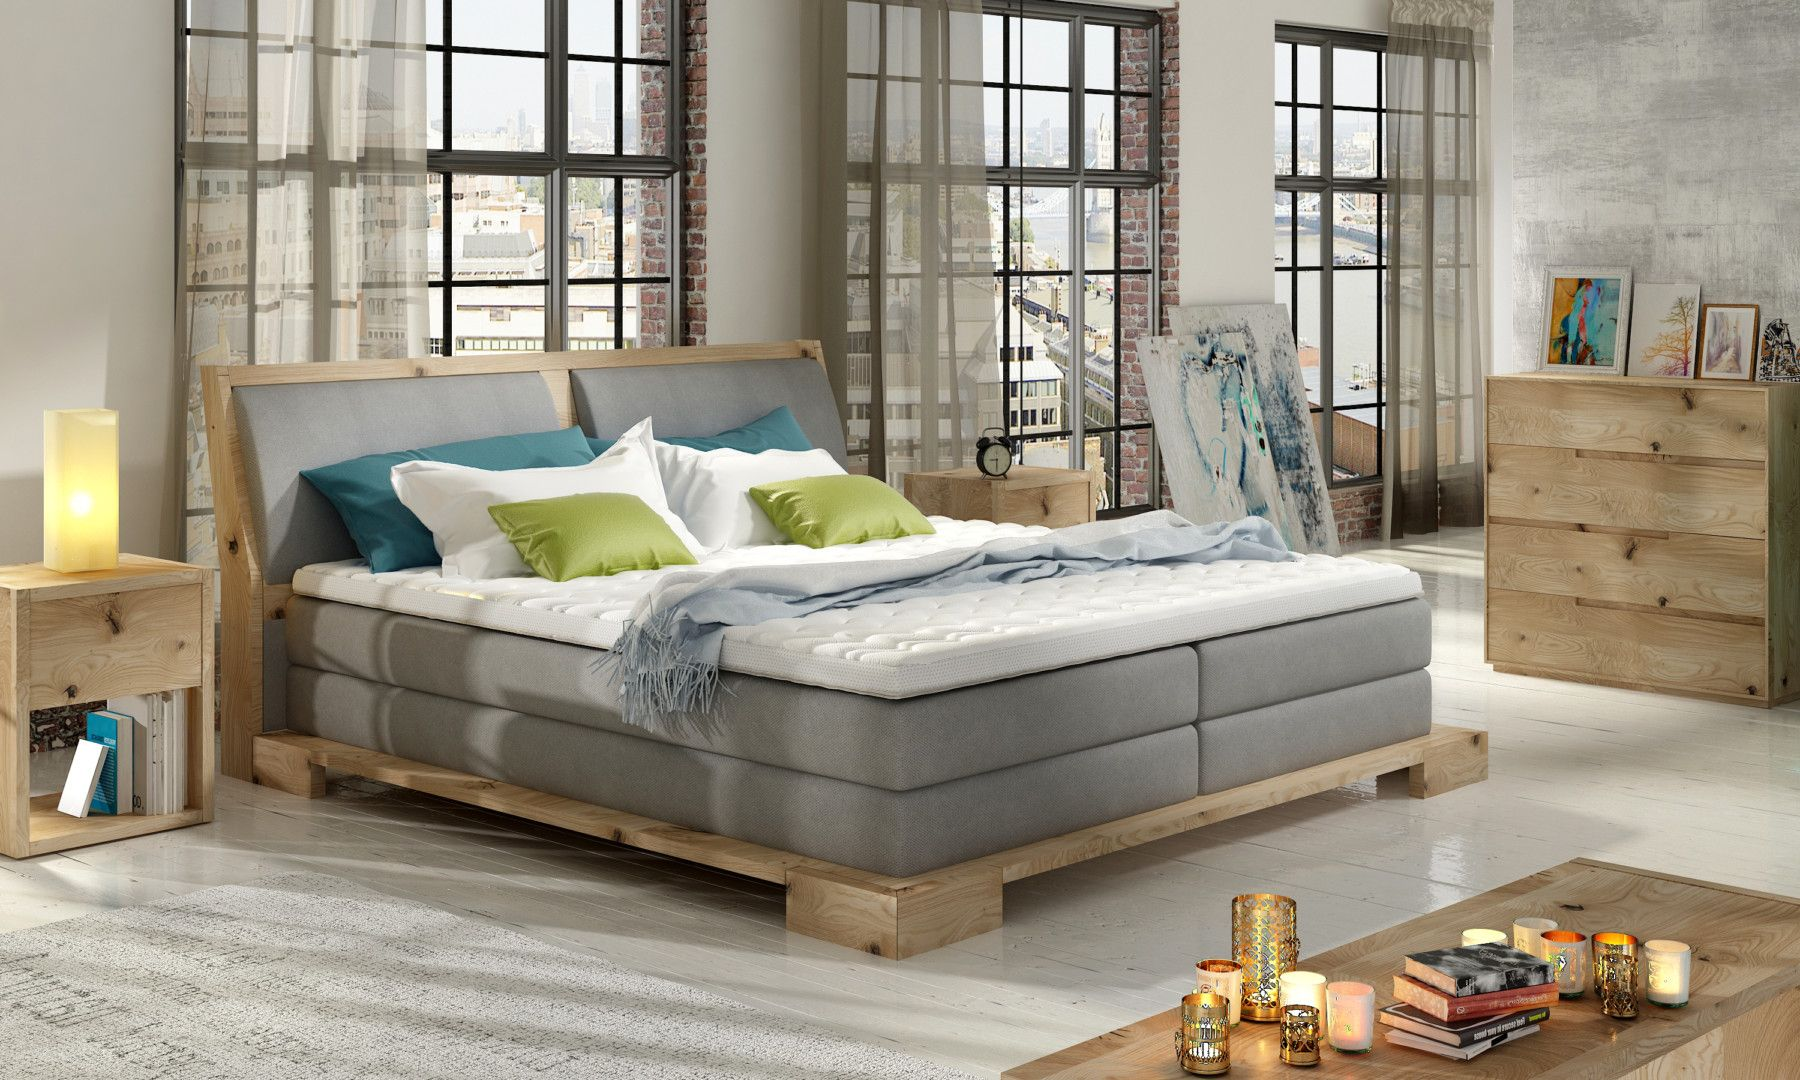 Get A Good Night S Rest On Our New Line Of Comfortable Beds While